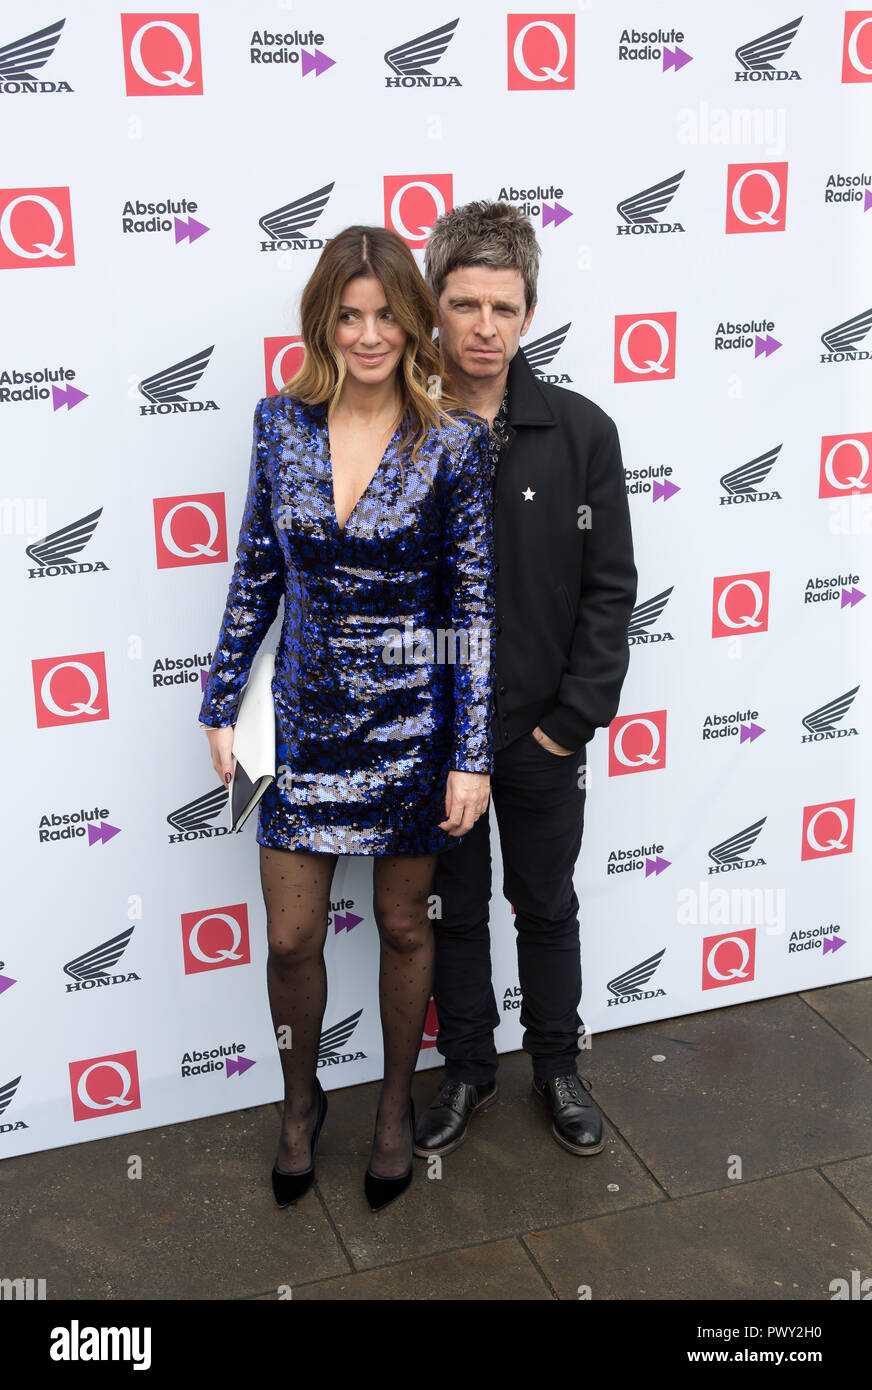 London, UK. 17th Oct 2018. The Round House Chalk Farm  London Uk 17th Oct 2018 Sara Macdonald and Noel gallagher arrive at the Q Awards 2018  in Association with Absolute Radio People In Picture: Sara Macdonald and Noel Gallagher Credit: Dean Fardell/Alamy Live News - Stock Image